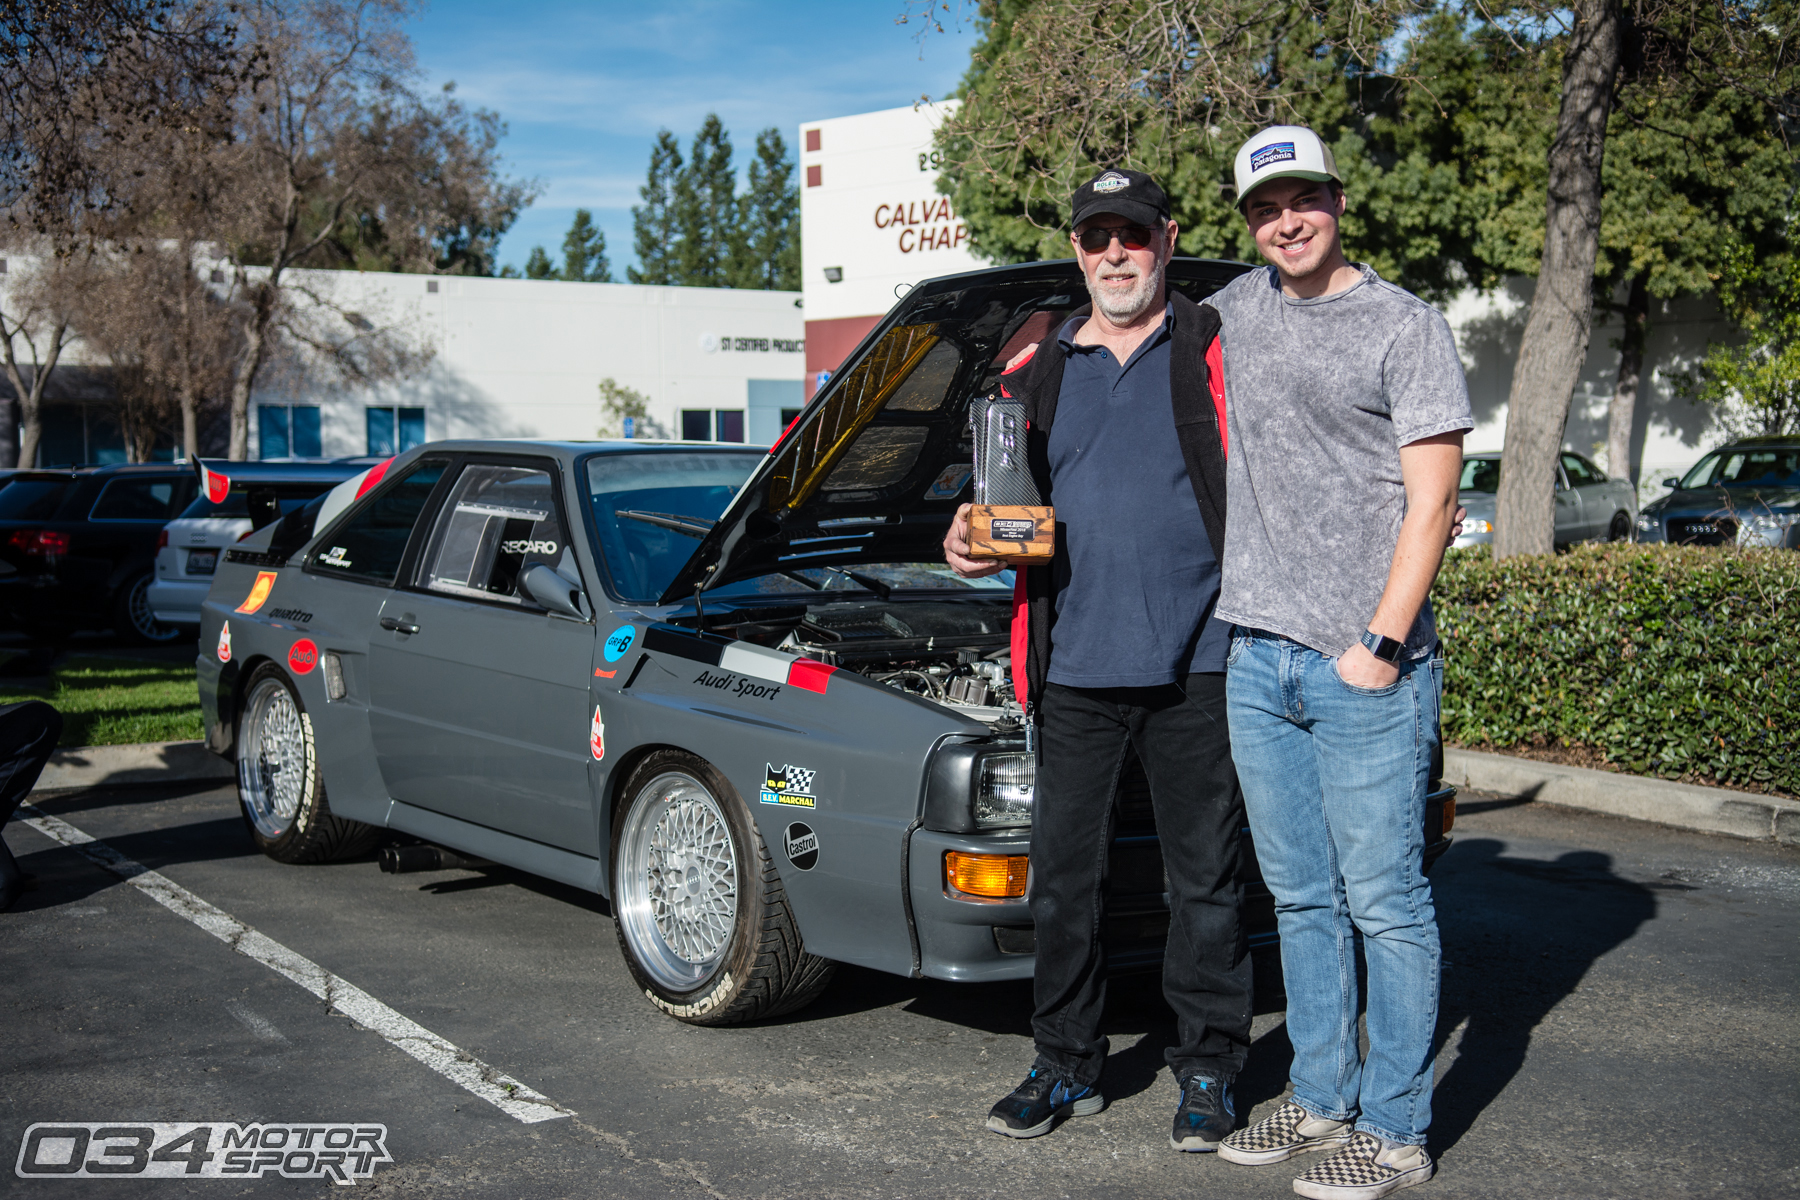 Best Engine Bay won by Curt and Cam Hammill with Audi Sport Quattro Replica